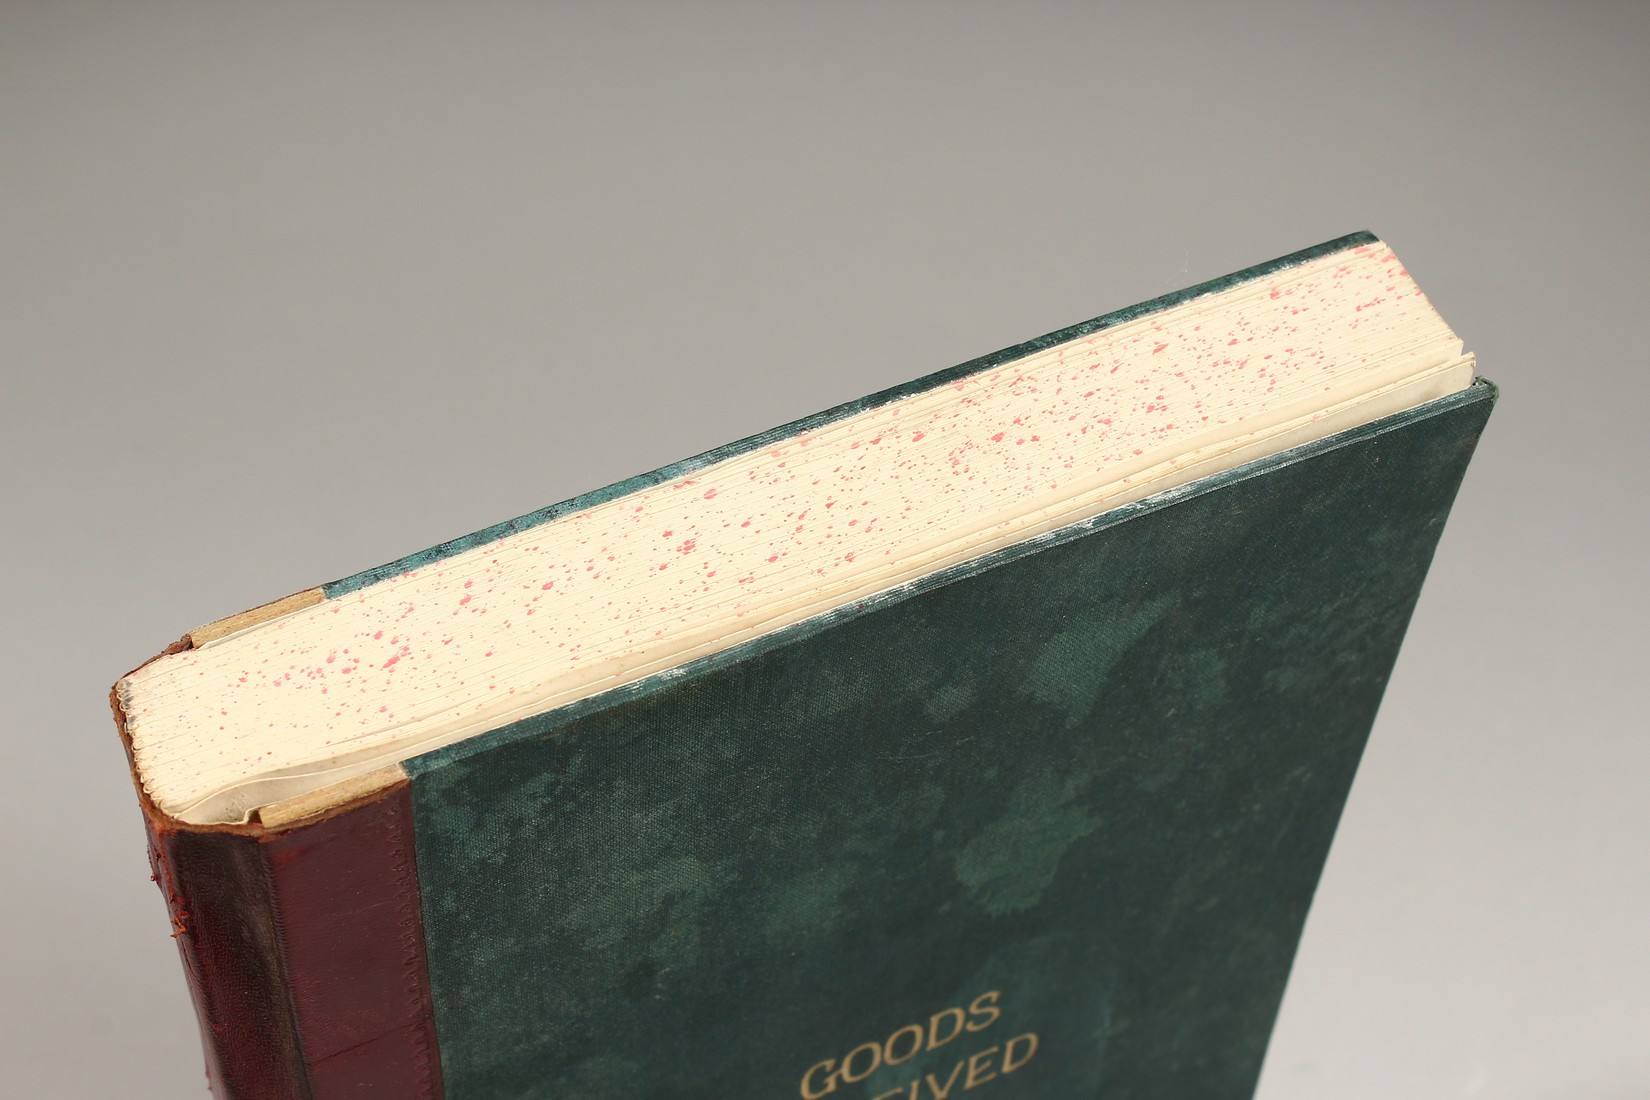 AN OLD UNUSED GOODS RECEIVED BOOK. - Image 2 of 5